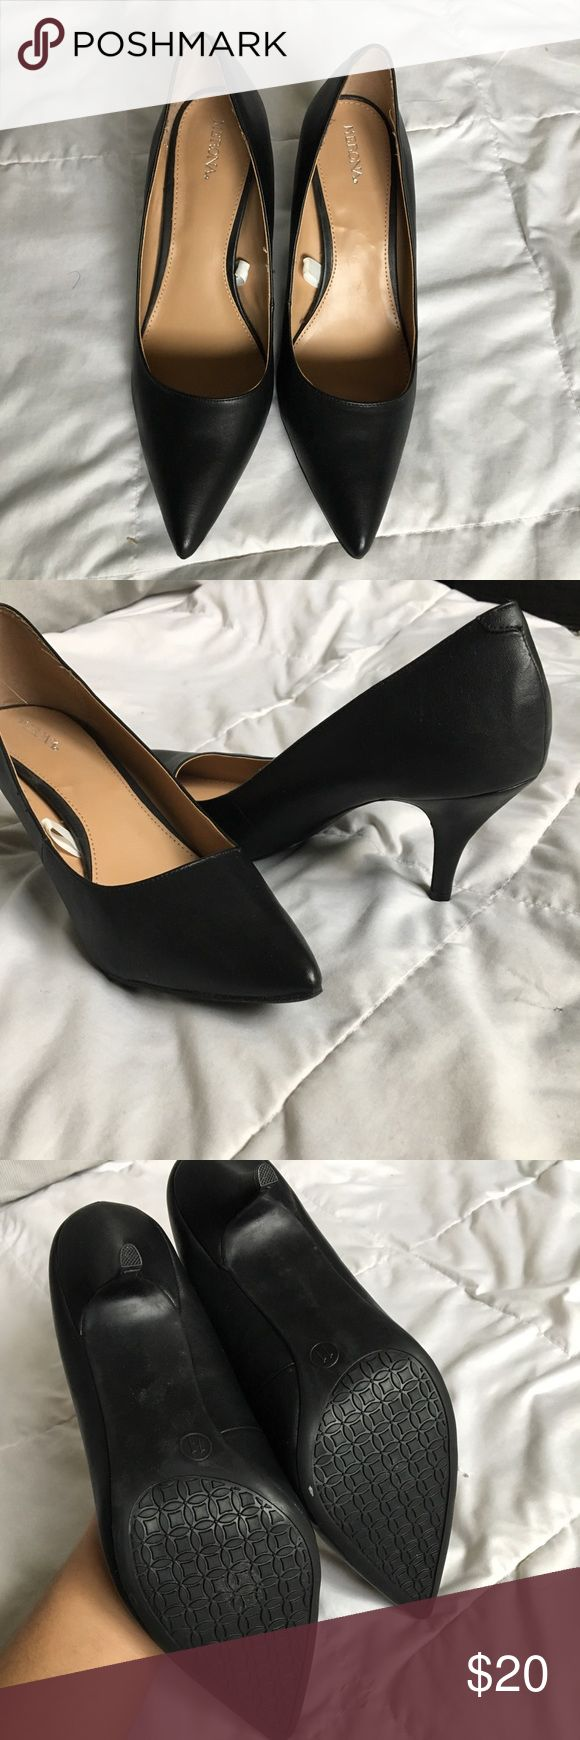 NYE SALE Merona Pointed Toe Pumps Merona Pointed Toe Pumps. These heels are in perfect condition, never worn. The heel is about 3 inches tall so they are very Work appropriate. these are perfect to wear to the office or to a lunch meeting.   Bundle and Save!!!  Offers Welcome  #Merona #pointedtoe #heels #kitten #3inch #office #black #business Merona Shoes Heels